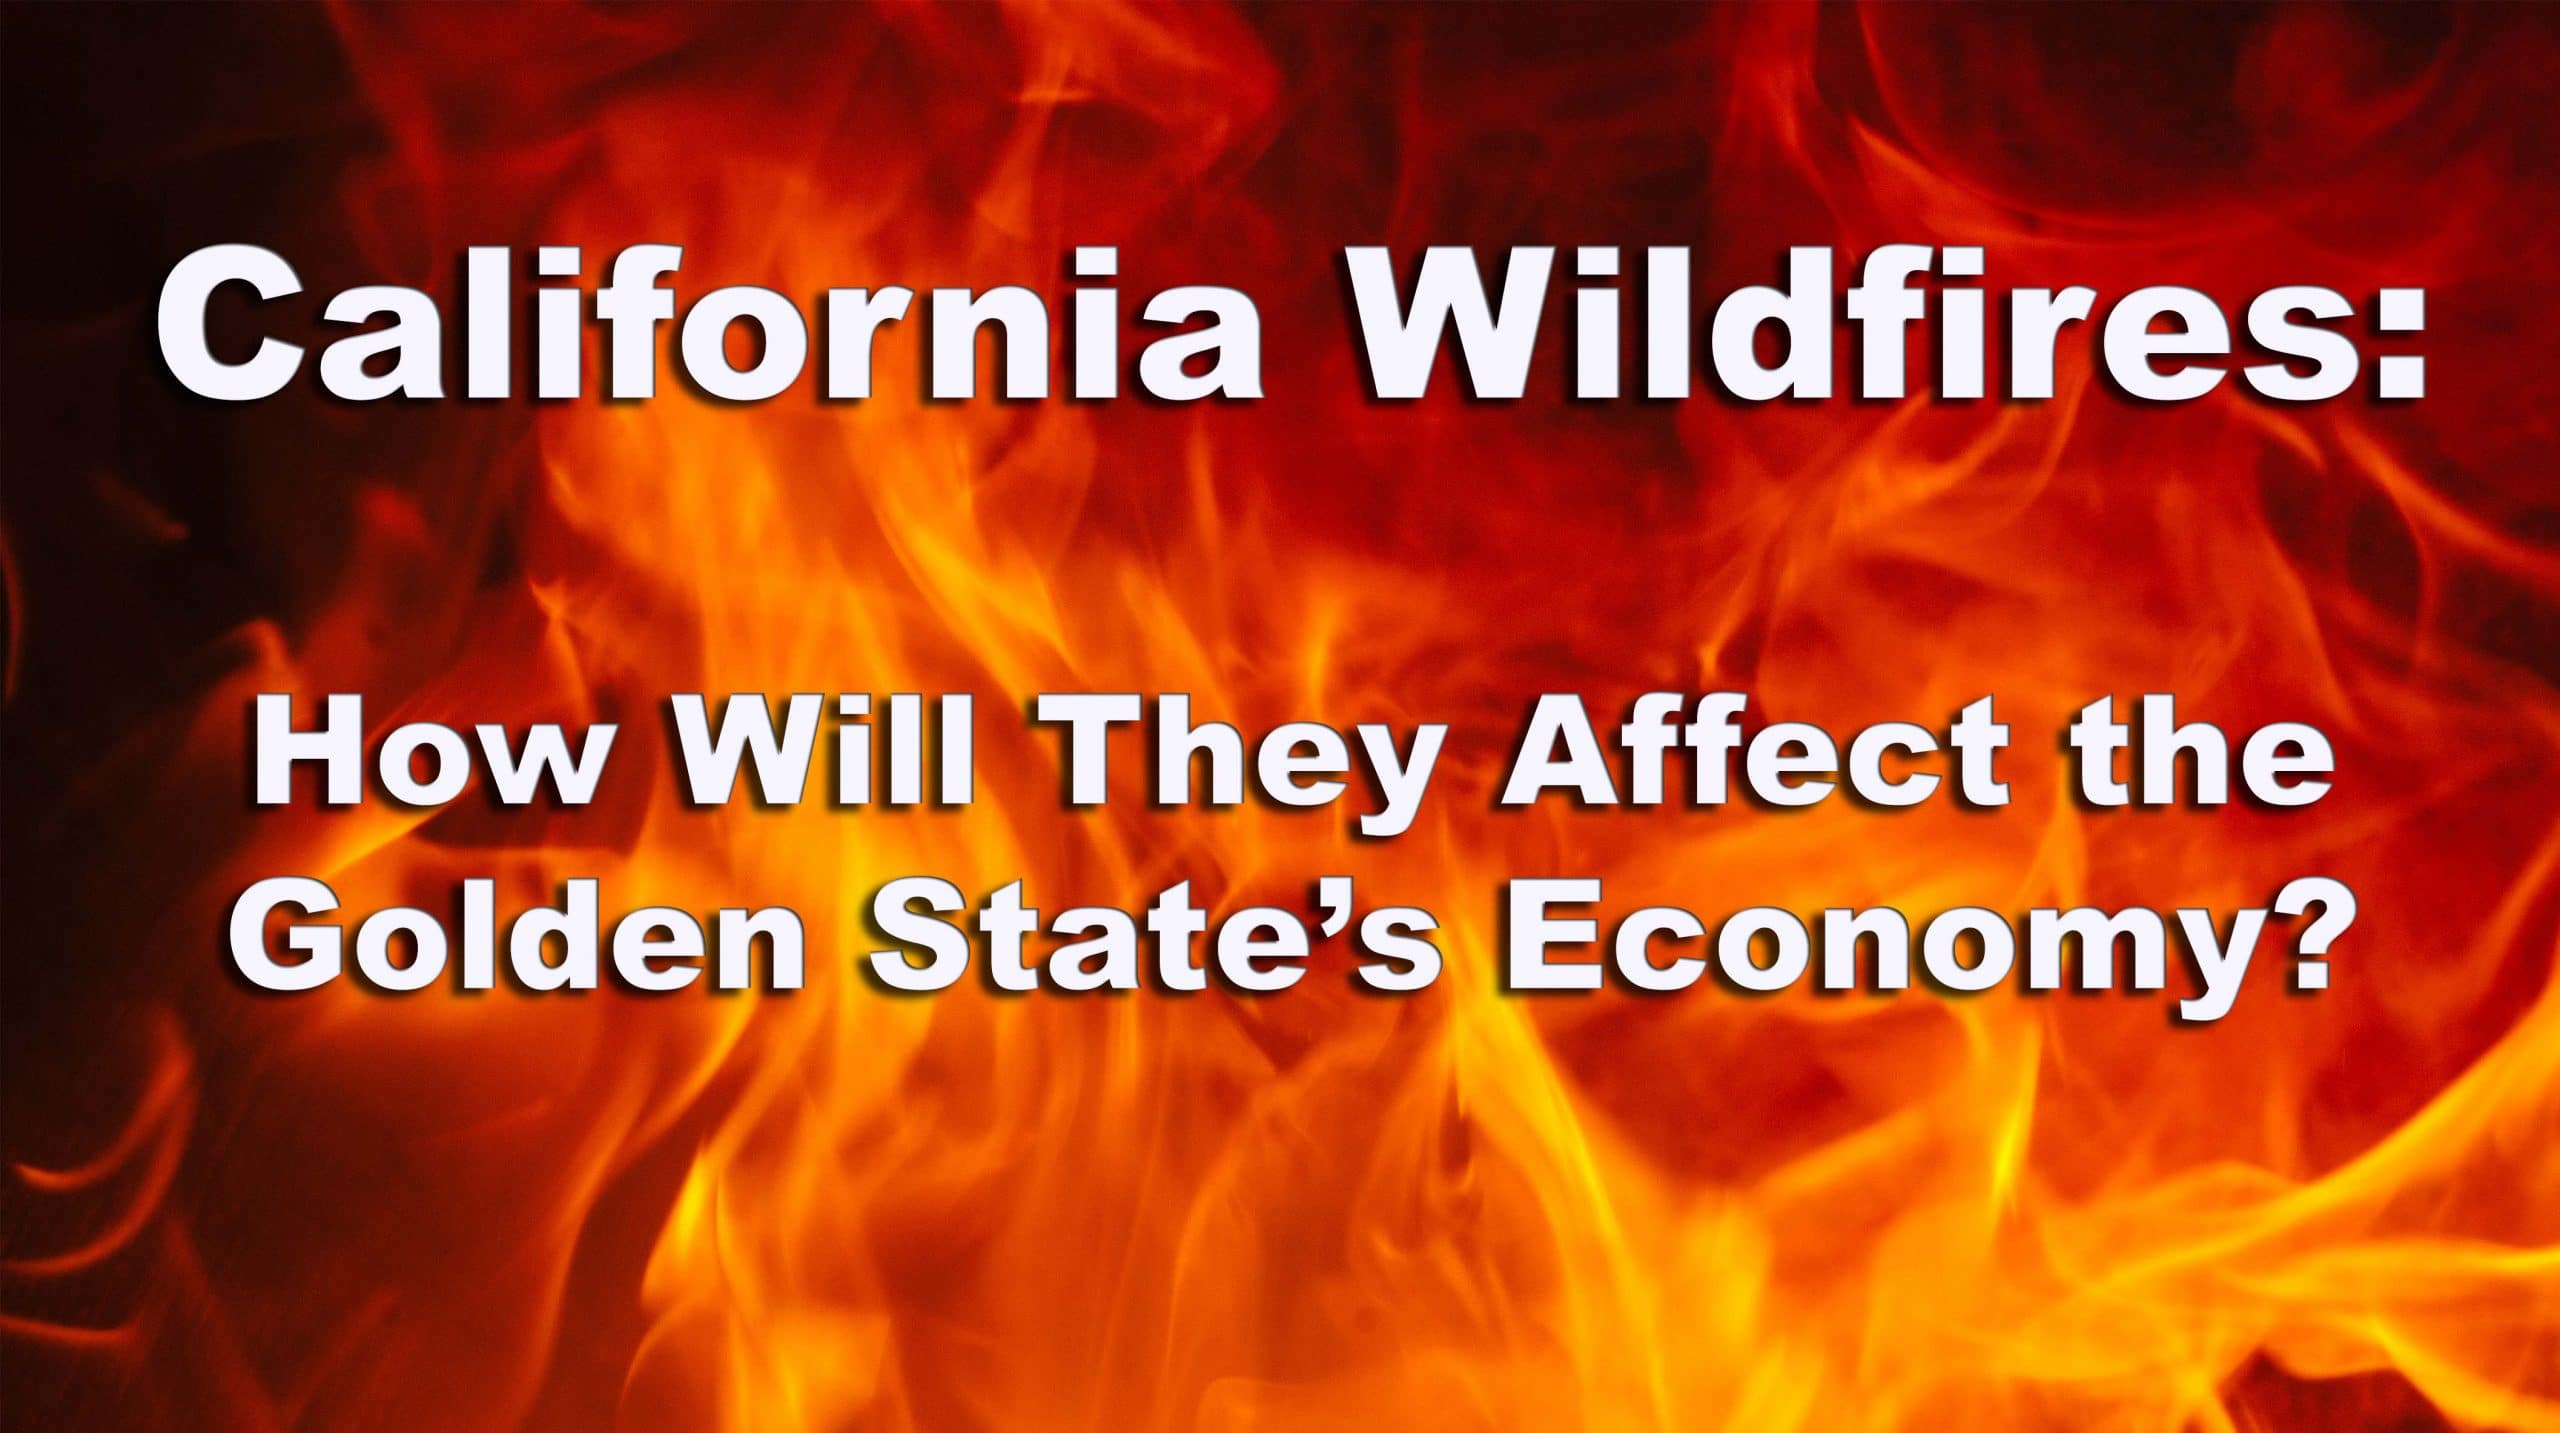 How the California Wildfires Will Affect Businesses in the Golden State.